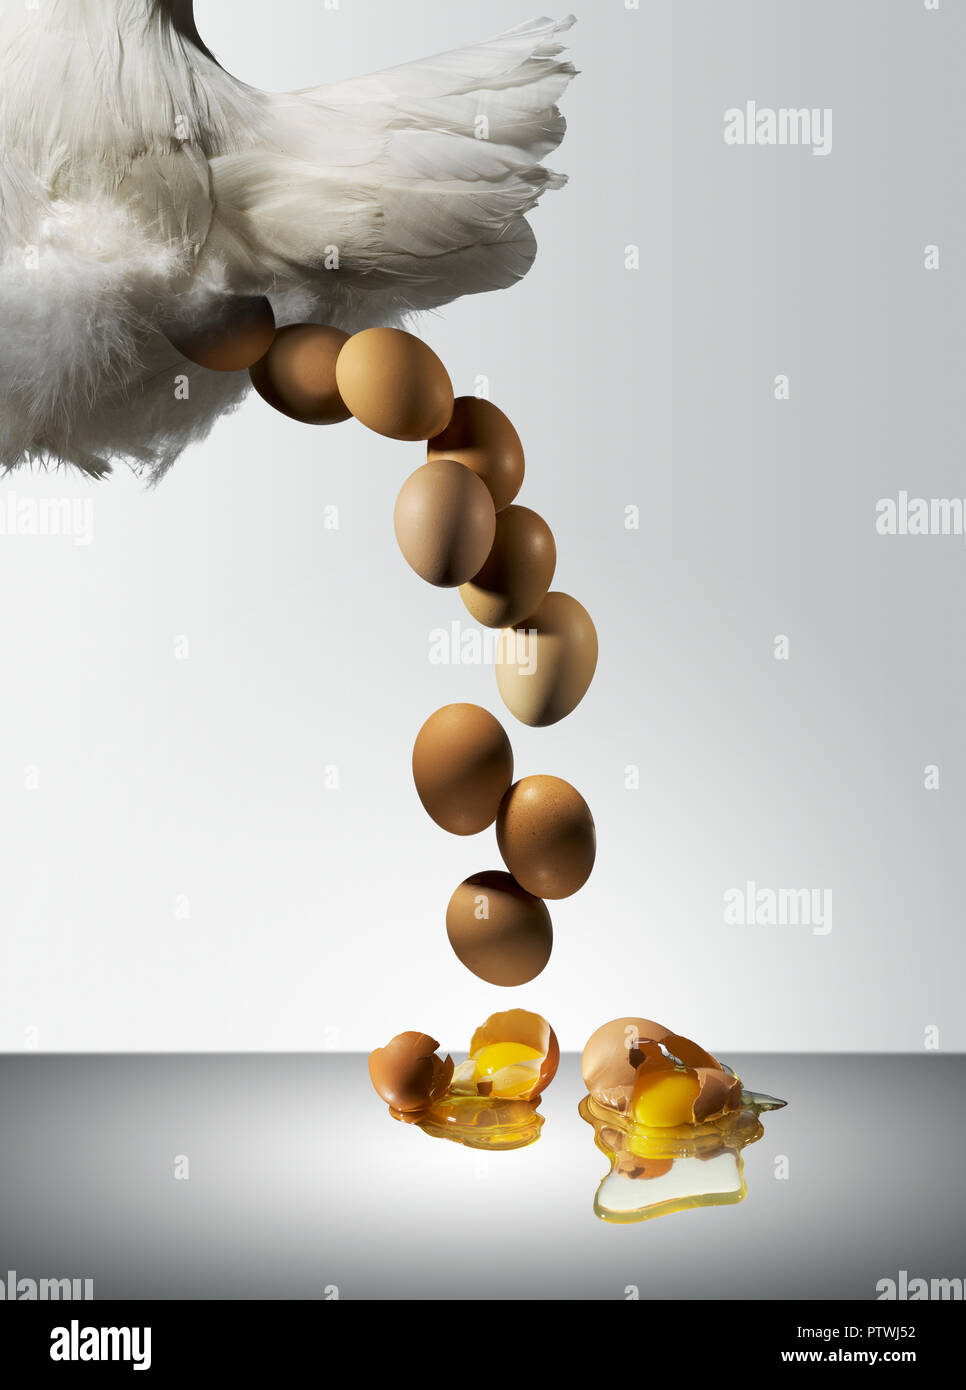 Hen laying fresh eggs with yolk and albumen spilling onto surface - Stock Image